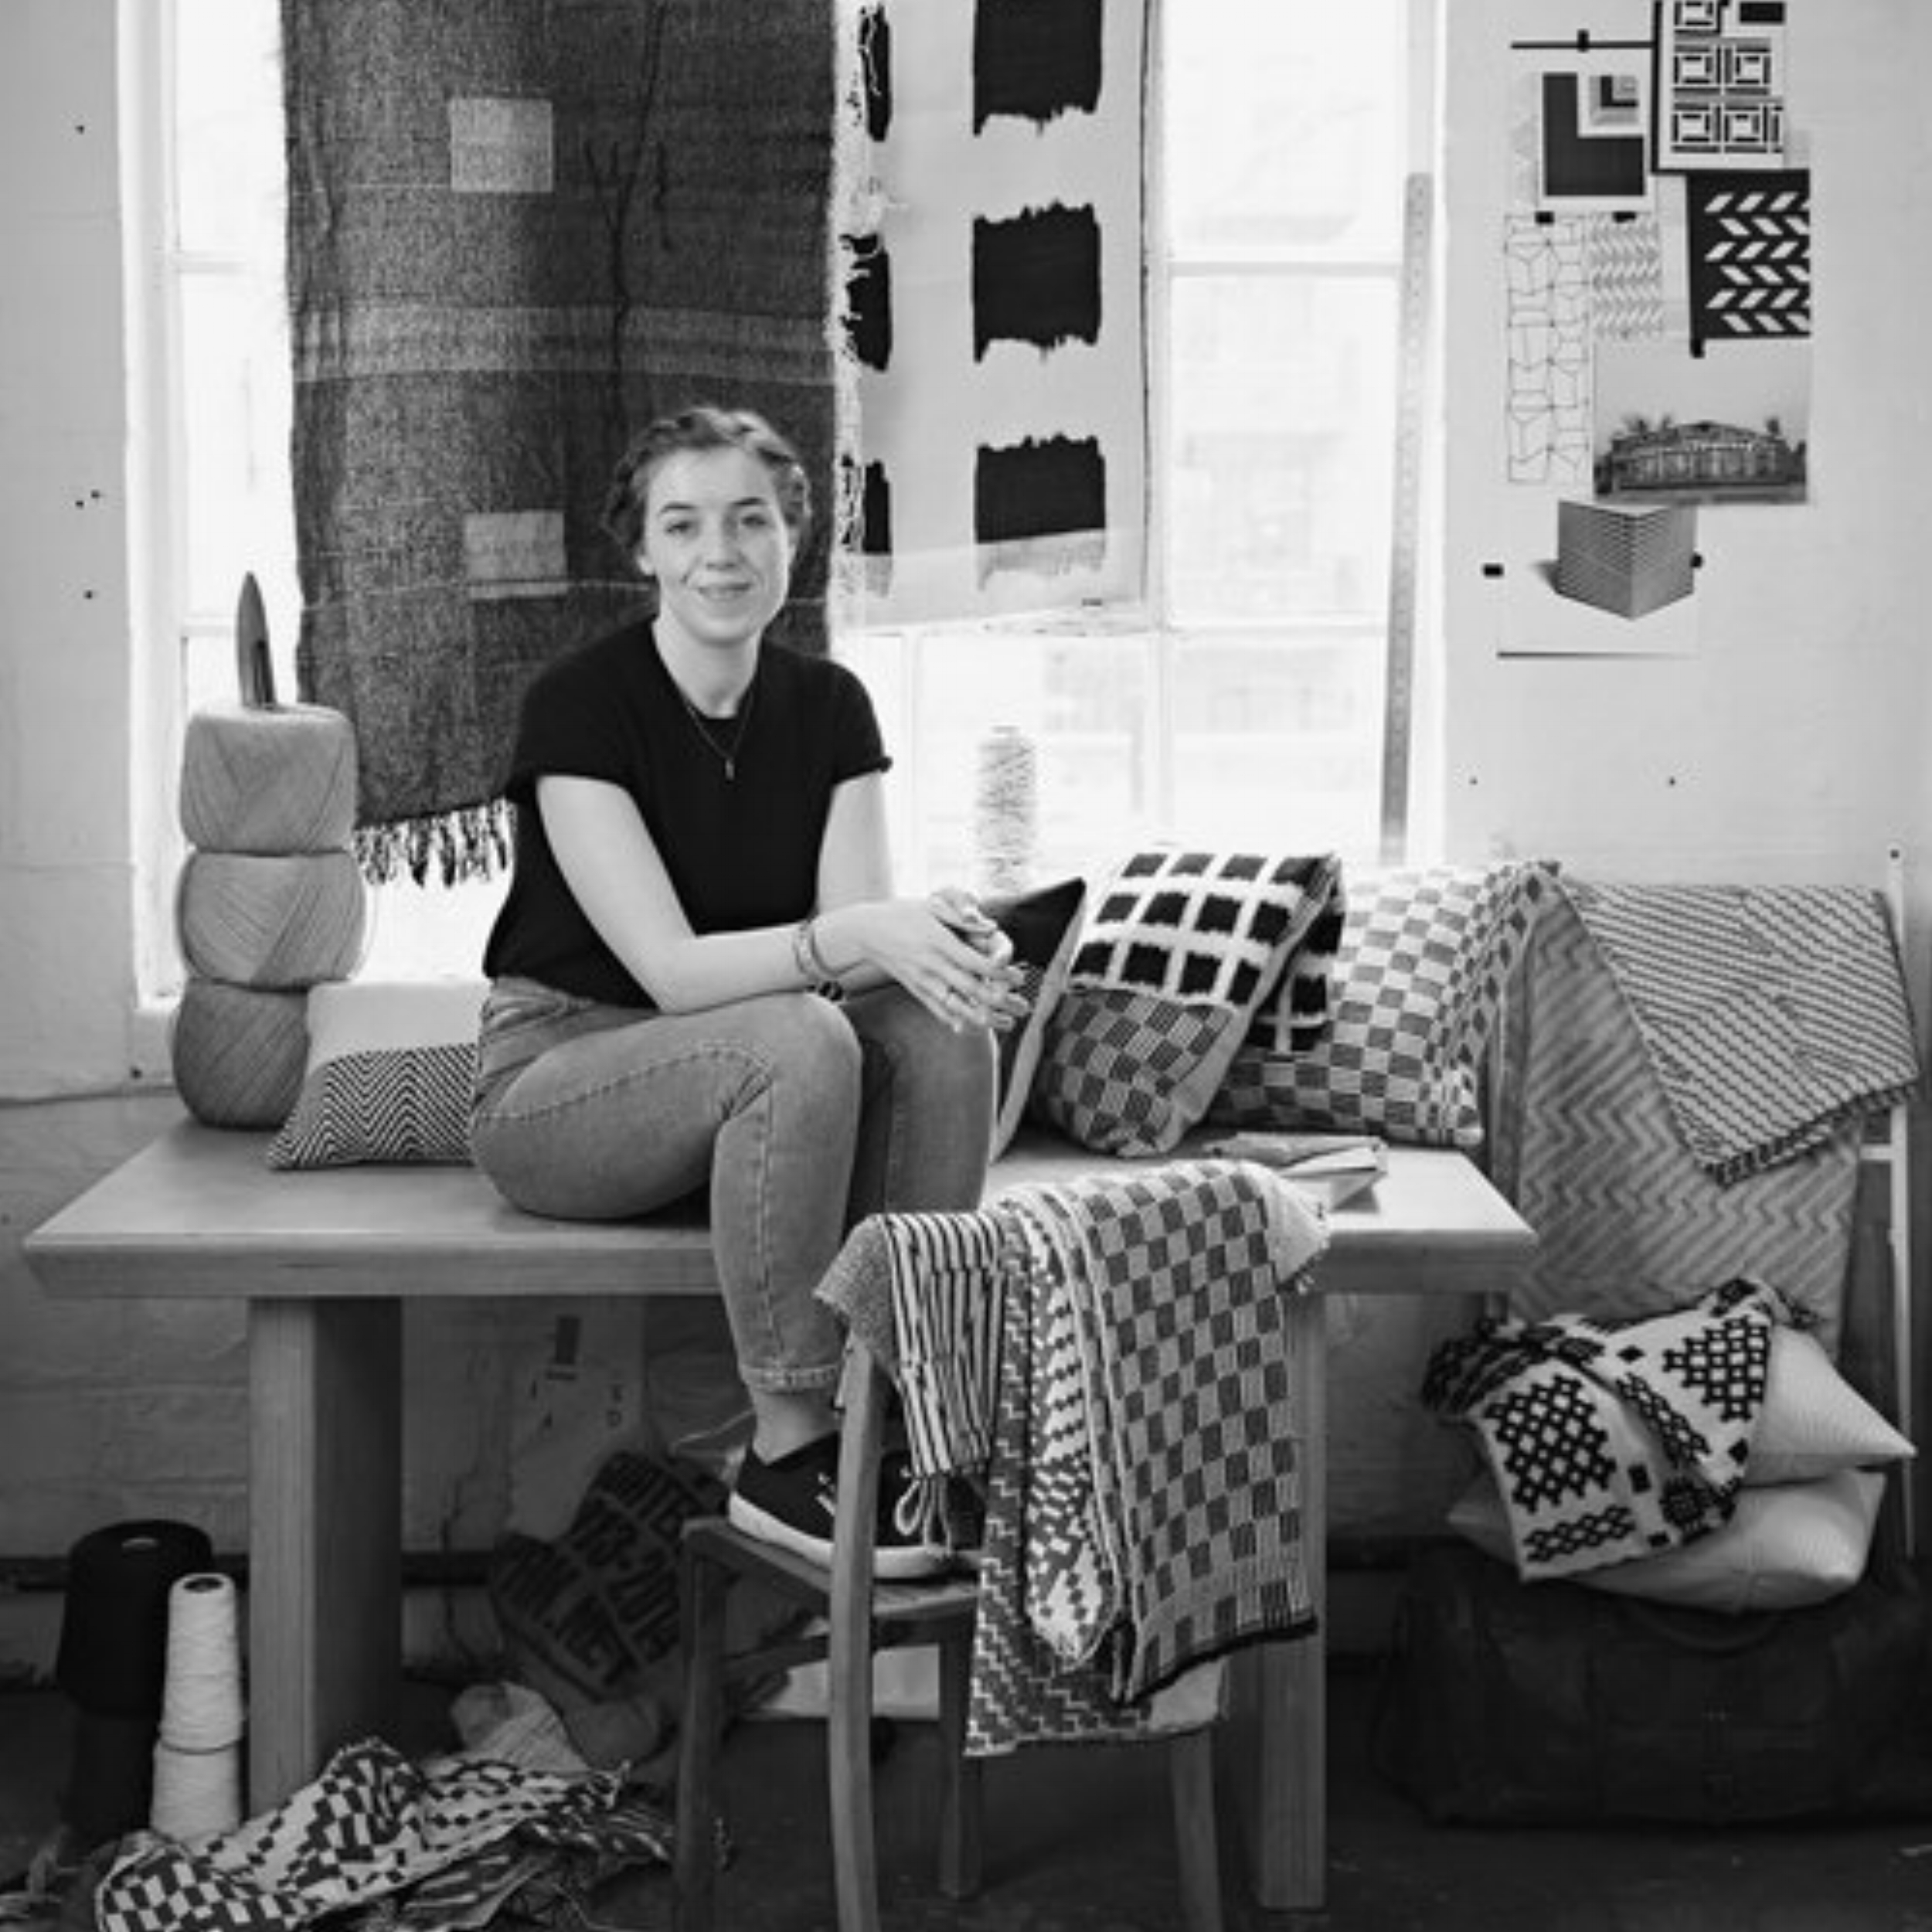 Beatrice Larkin - Previous Designer at LLL   Beatrice Larkin founded her studio in London, specialising in modern woven textiles, accessories and interior products. Not driven by seasonal trends, Beatrice's distinctive, softened geometric fabrics have a timeless quality that are designed to be enjoyed and appreciated all year round.  The design process begins in Bea's East London studio with her drawings taking inspiration from traditional weave structures, West African textiles, The Bauhaus and Brutalist architecture. She then turns these sketches into jacquard weaves, playing with scale and repeat, focusing on the structure and design of cloth in equal measure.  All production takes place in England and Beatrice works with well-respected, highly skilled manufacturers who understand the care and attention needed for the high end textile market.   Look Like Love Asks….    Whose work are you most inspired by?  - Anni Albers.   What is your favourite time of the day to get inspired?  - Morning.   Best snack for studio days?  - Bakewell Tarts.